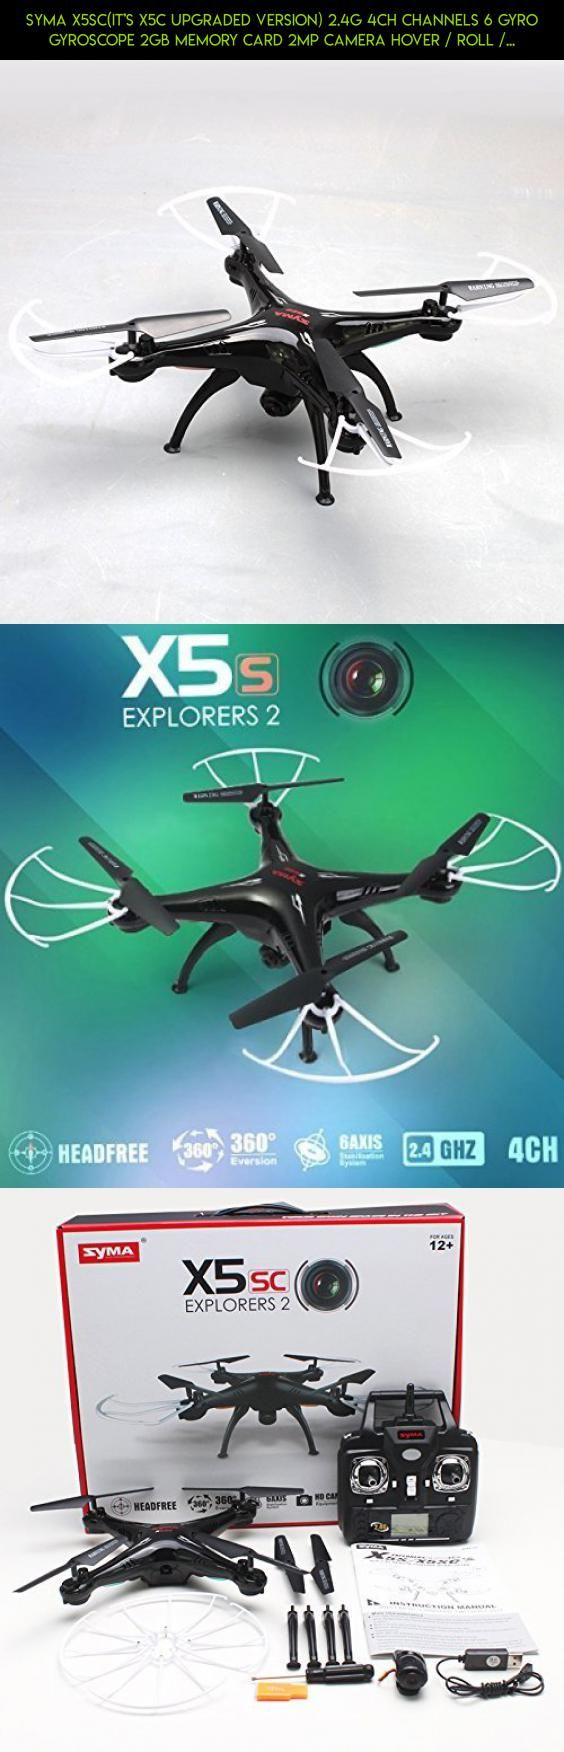 Syma X5scits X5c Upgraded Version 24g 4ch Channels 6 Gyro Rc Quadcopter X8c Venture 24ghz With 2 Mp Full Hd Camera White Gyroscope 2gb Memory Card 2mp Hover Roll 3d Flight Headless Mode